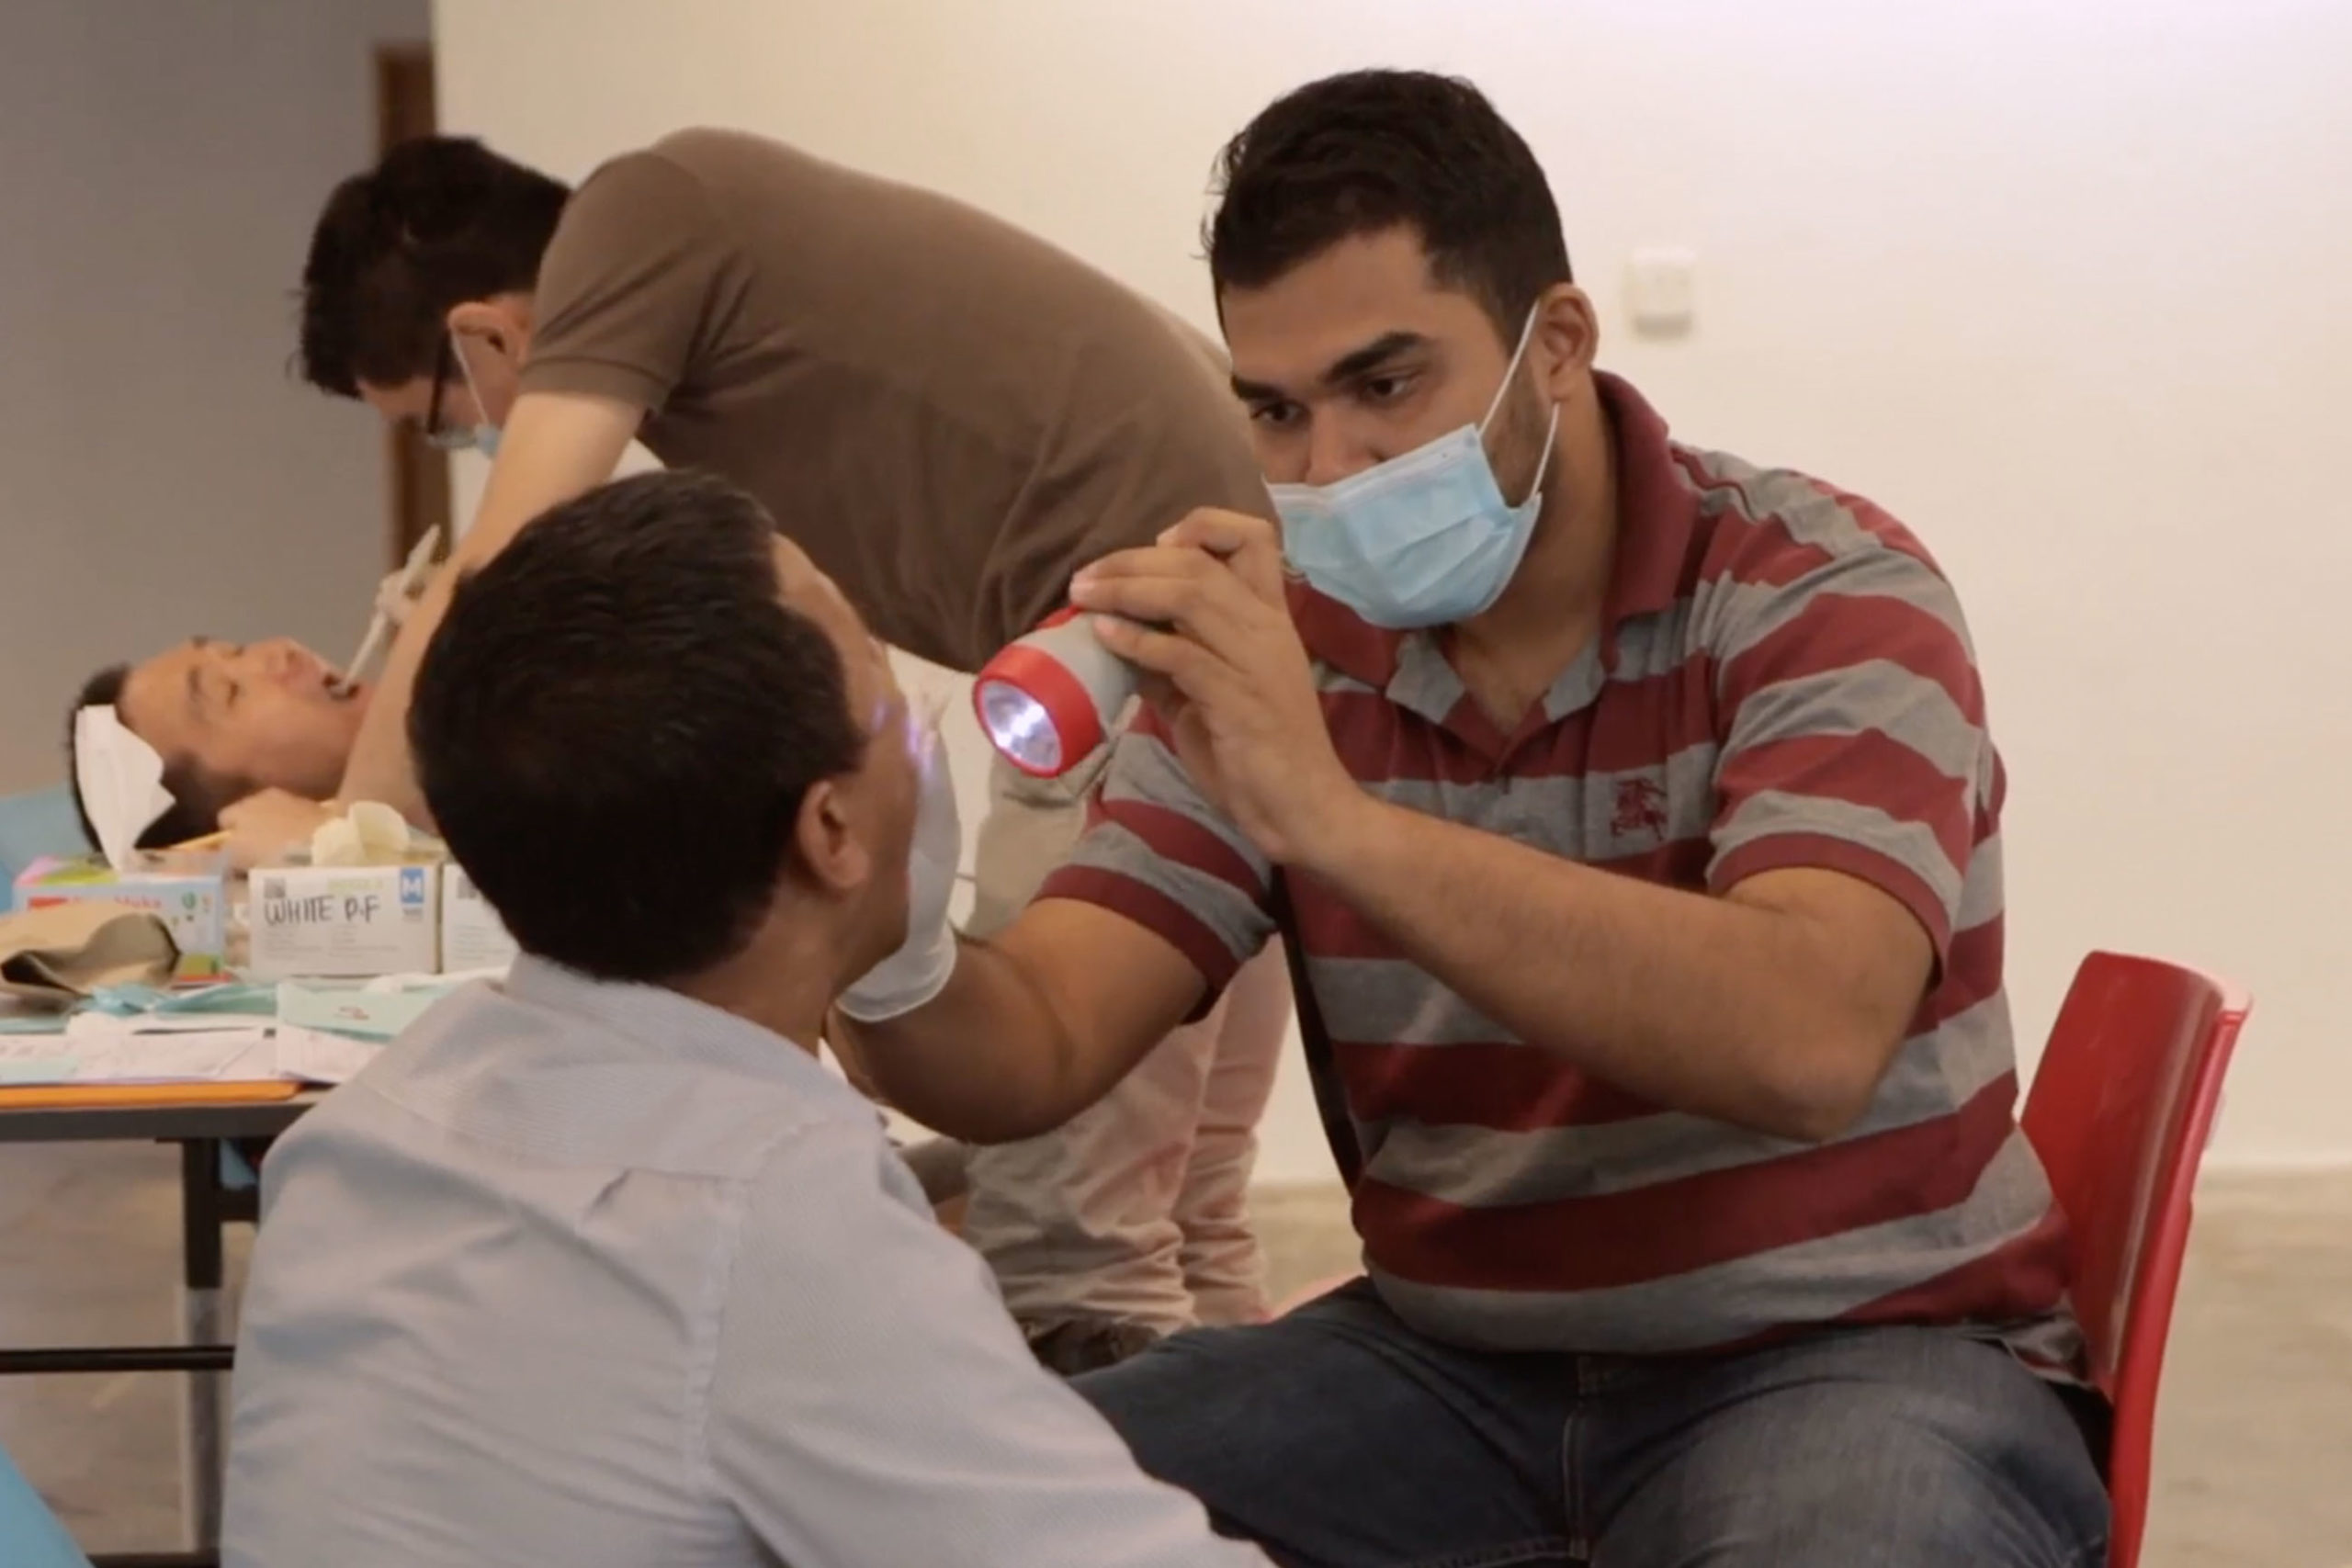 Dental checkups being given as part of the free health screenings offered under the Migrant Health Checkup Programme